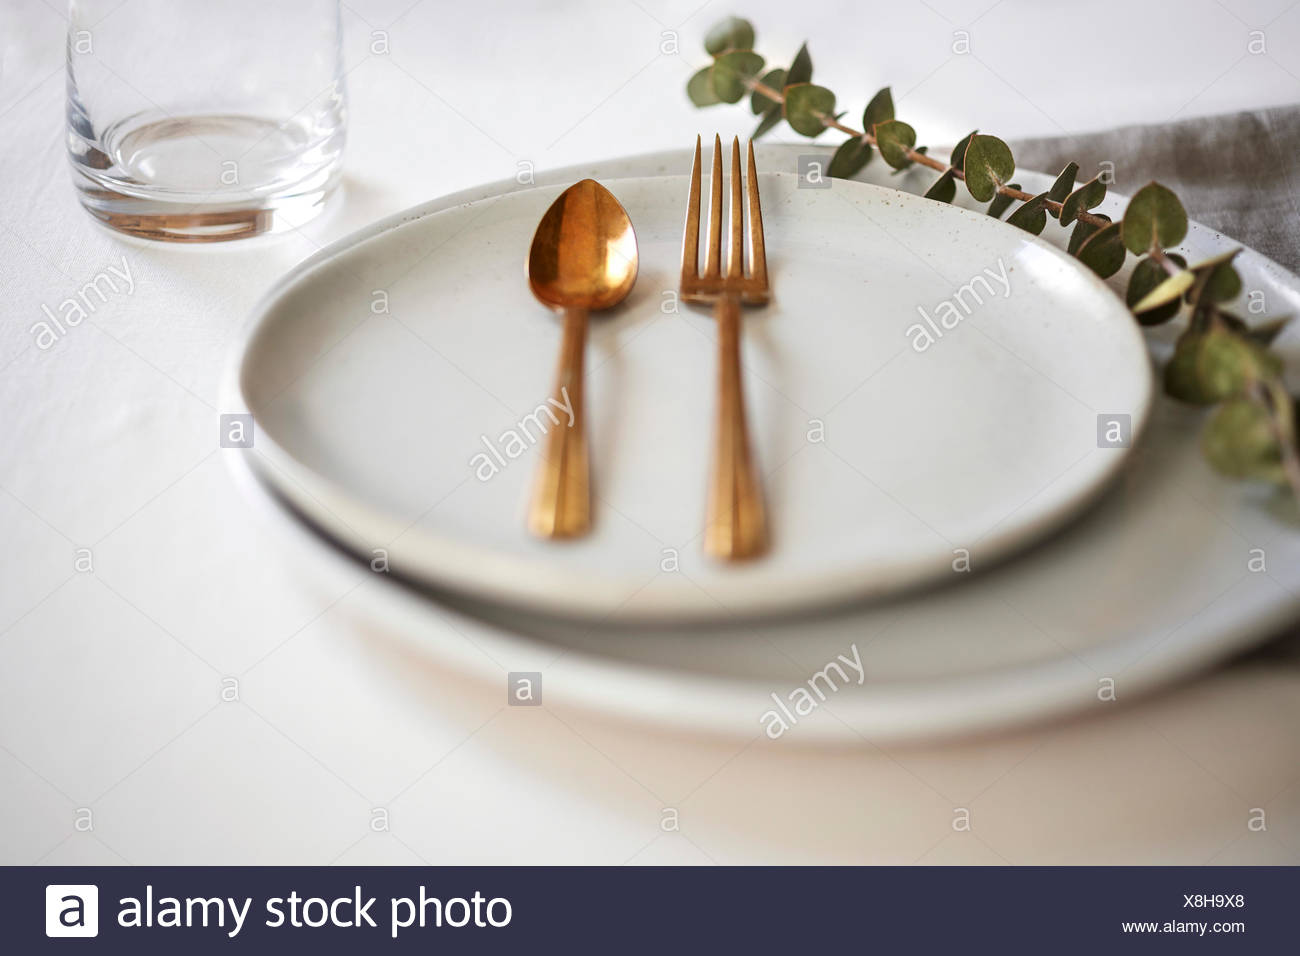 Minimal Table Setting With Handmade Off White Plates Gold Silverware And Linens Stock Photo Alamy